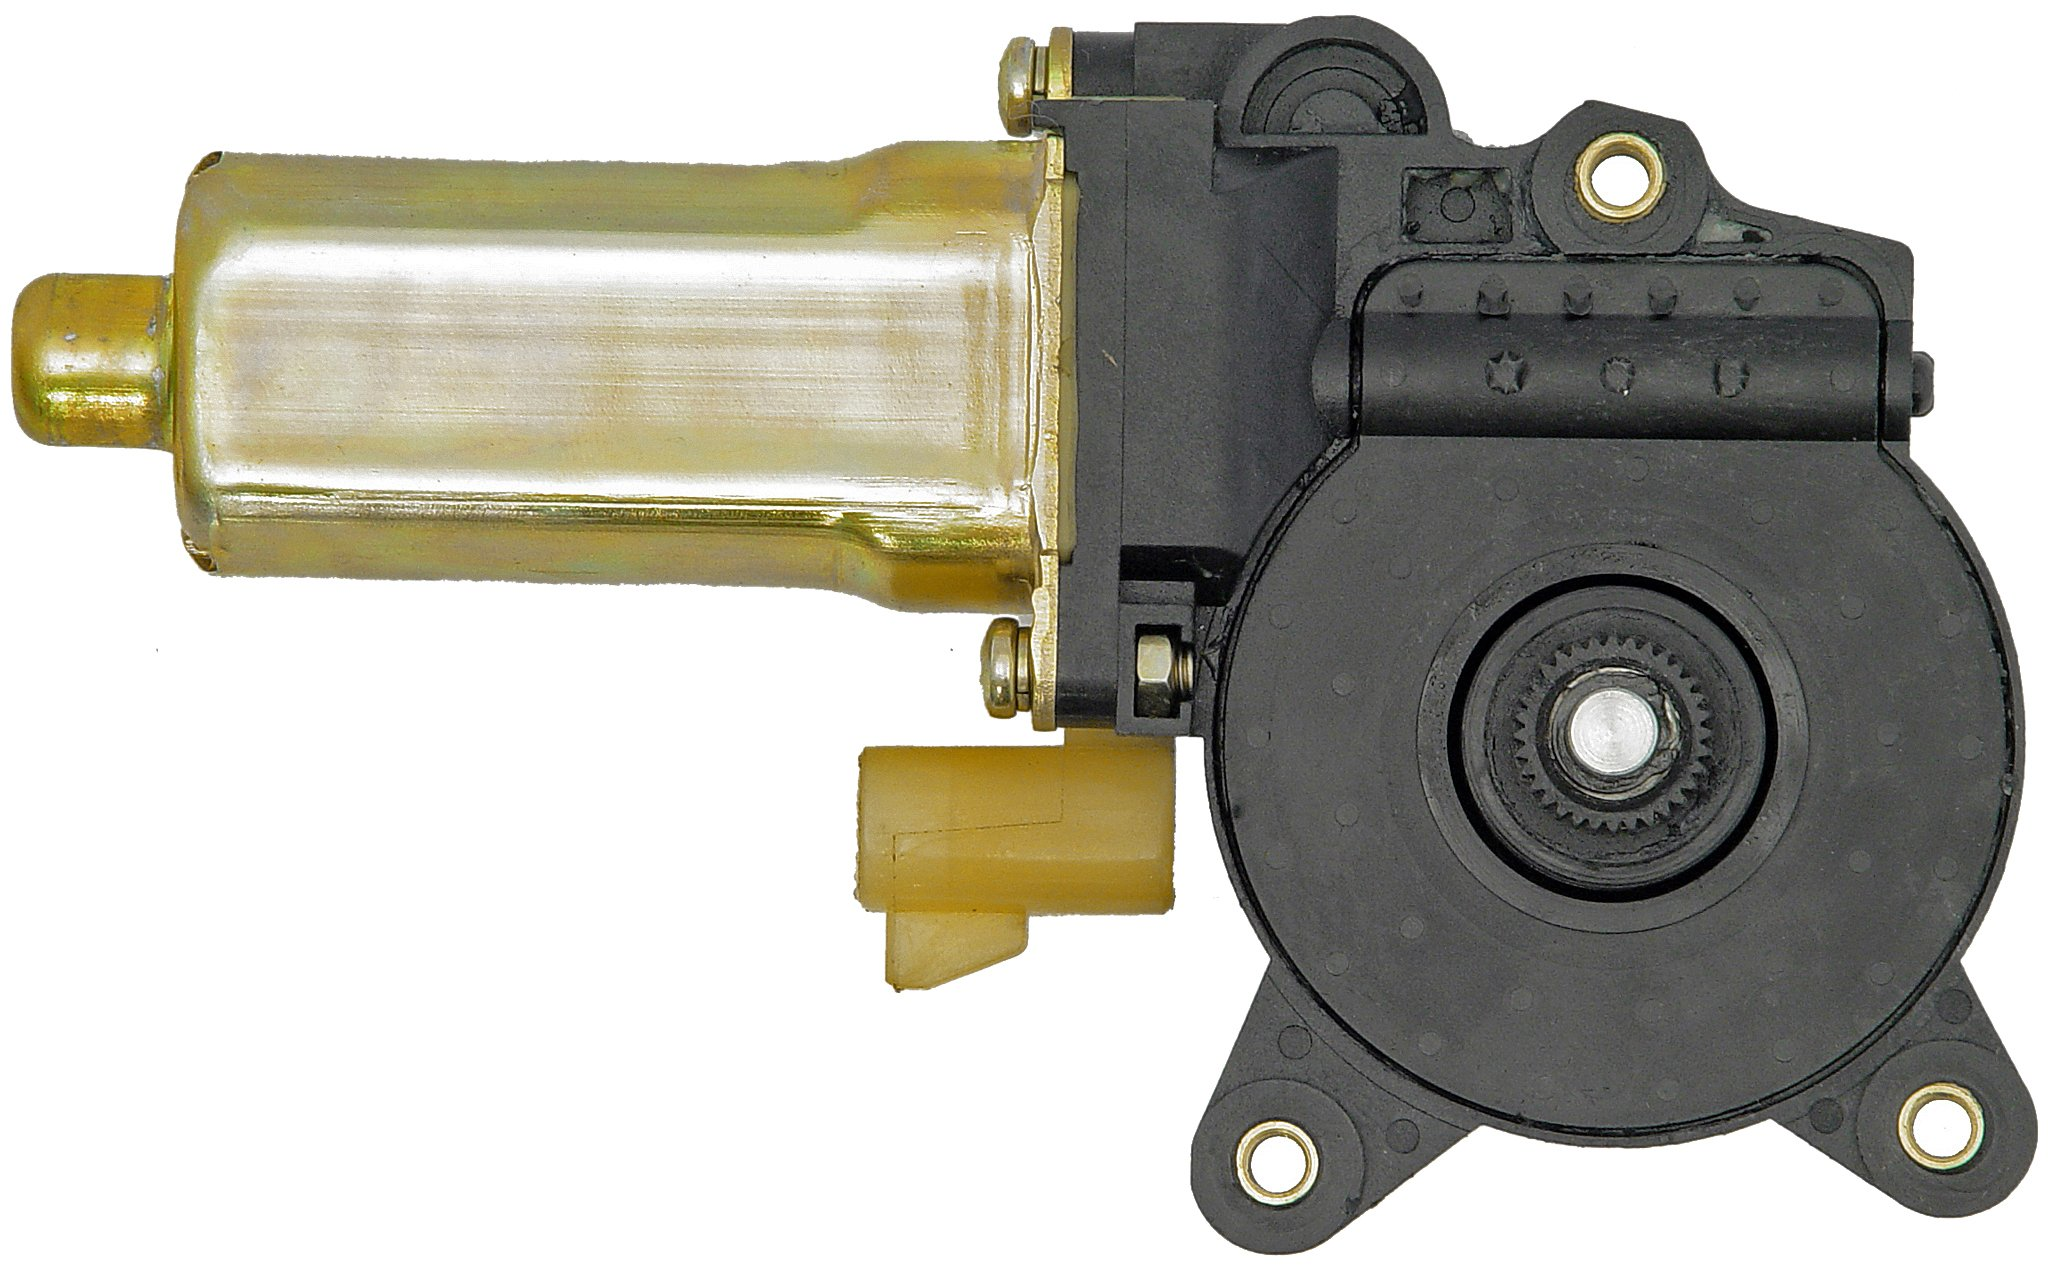 Dorman 742-126 Rear Driver Side Replacement Window Lift Motor for Oldsmobile/Pontiac Alero/Grand Am by Dorman